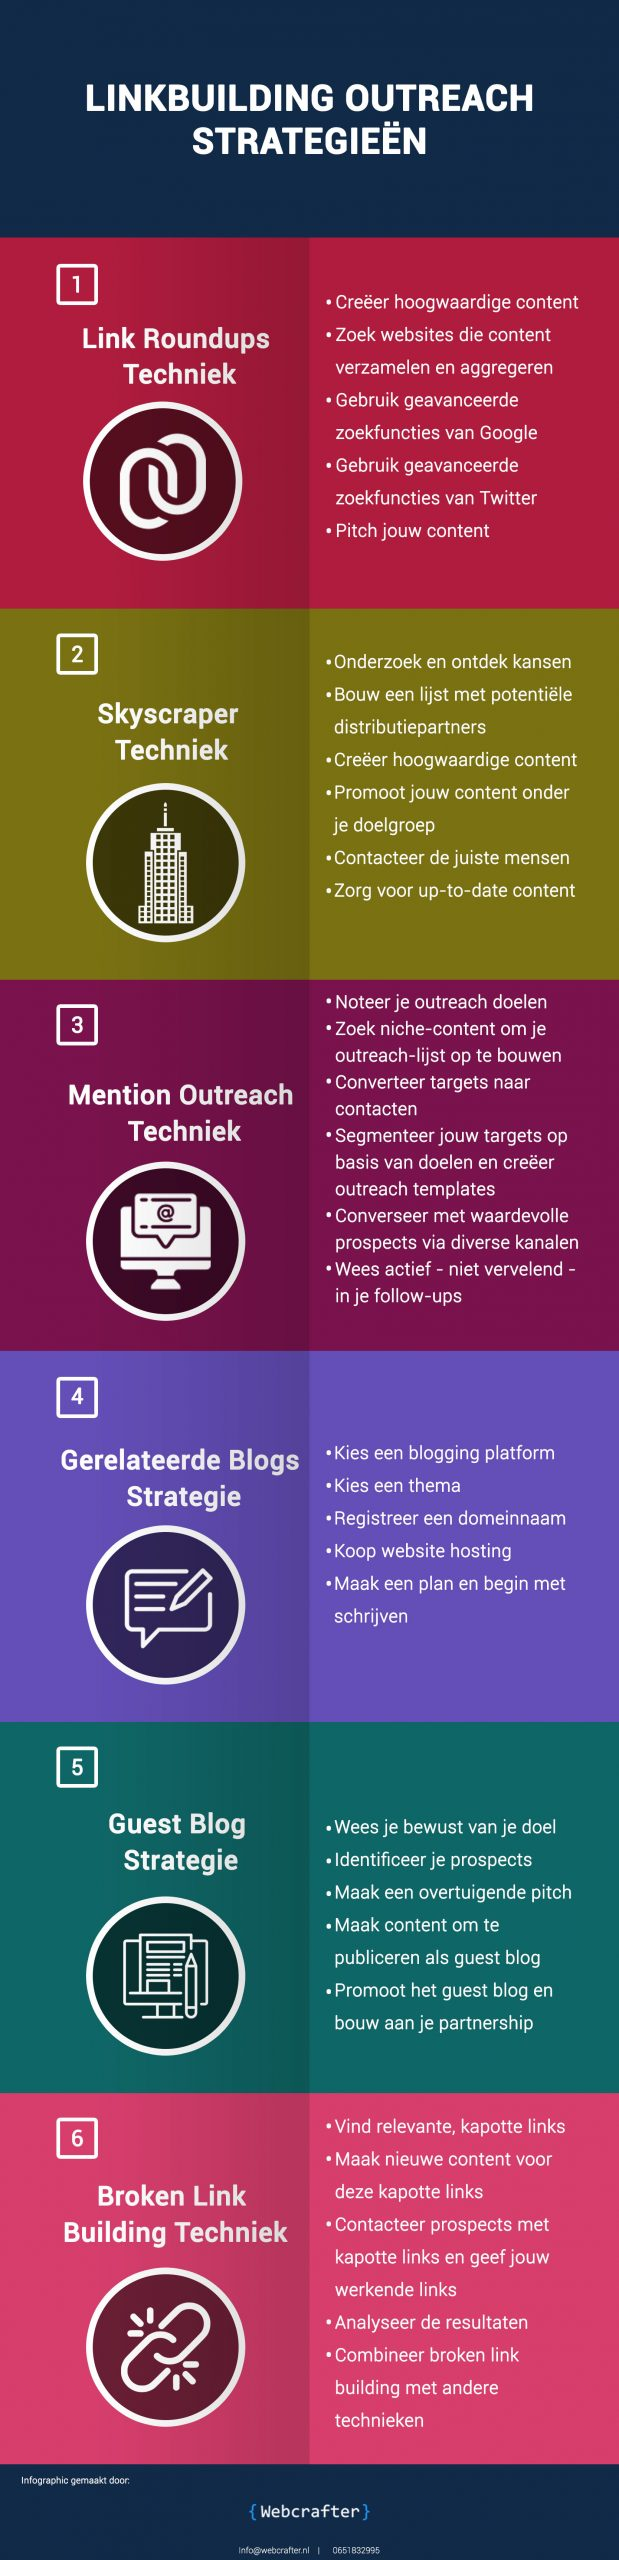 Linkbuilding outreach strategieën